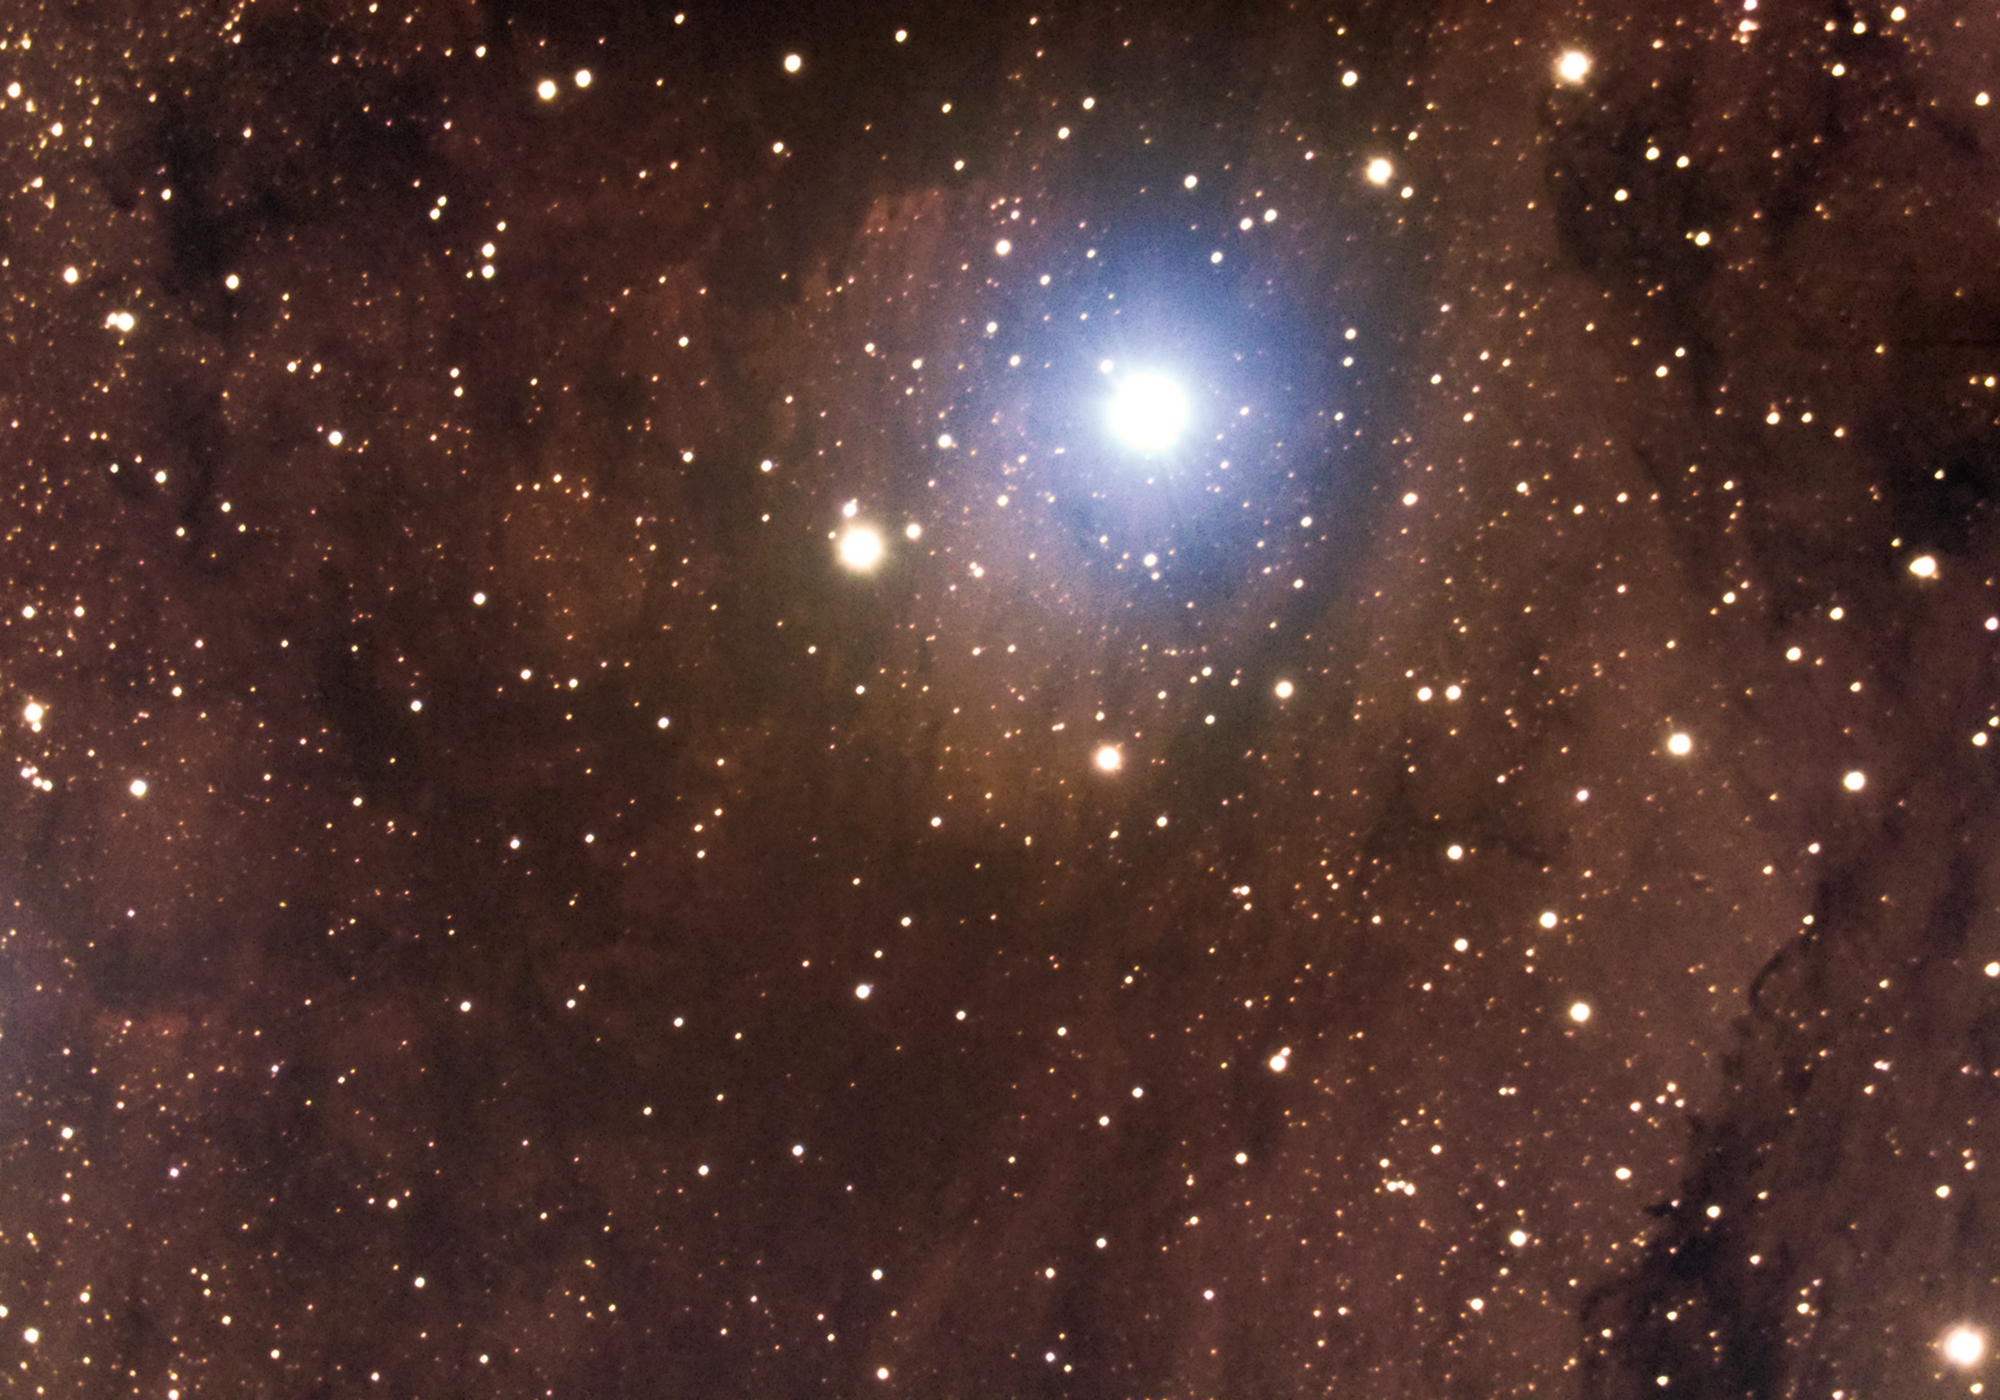 Star Cygni 57 and the North America Nebula